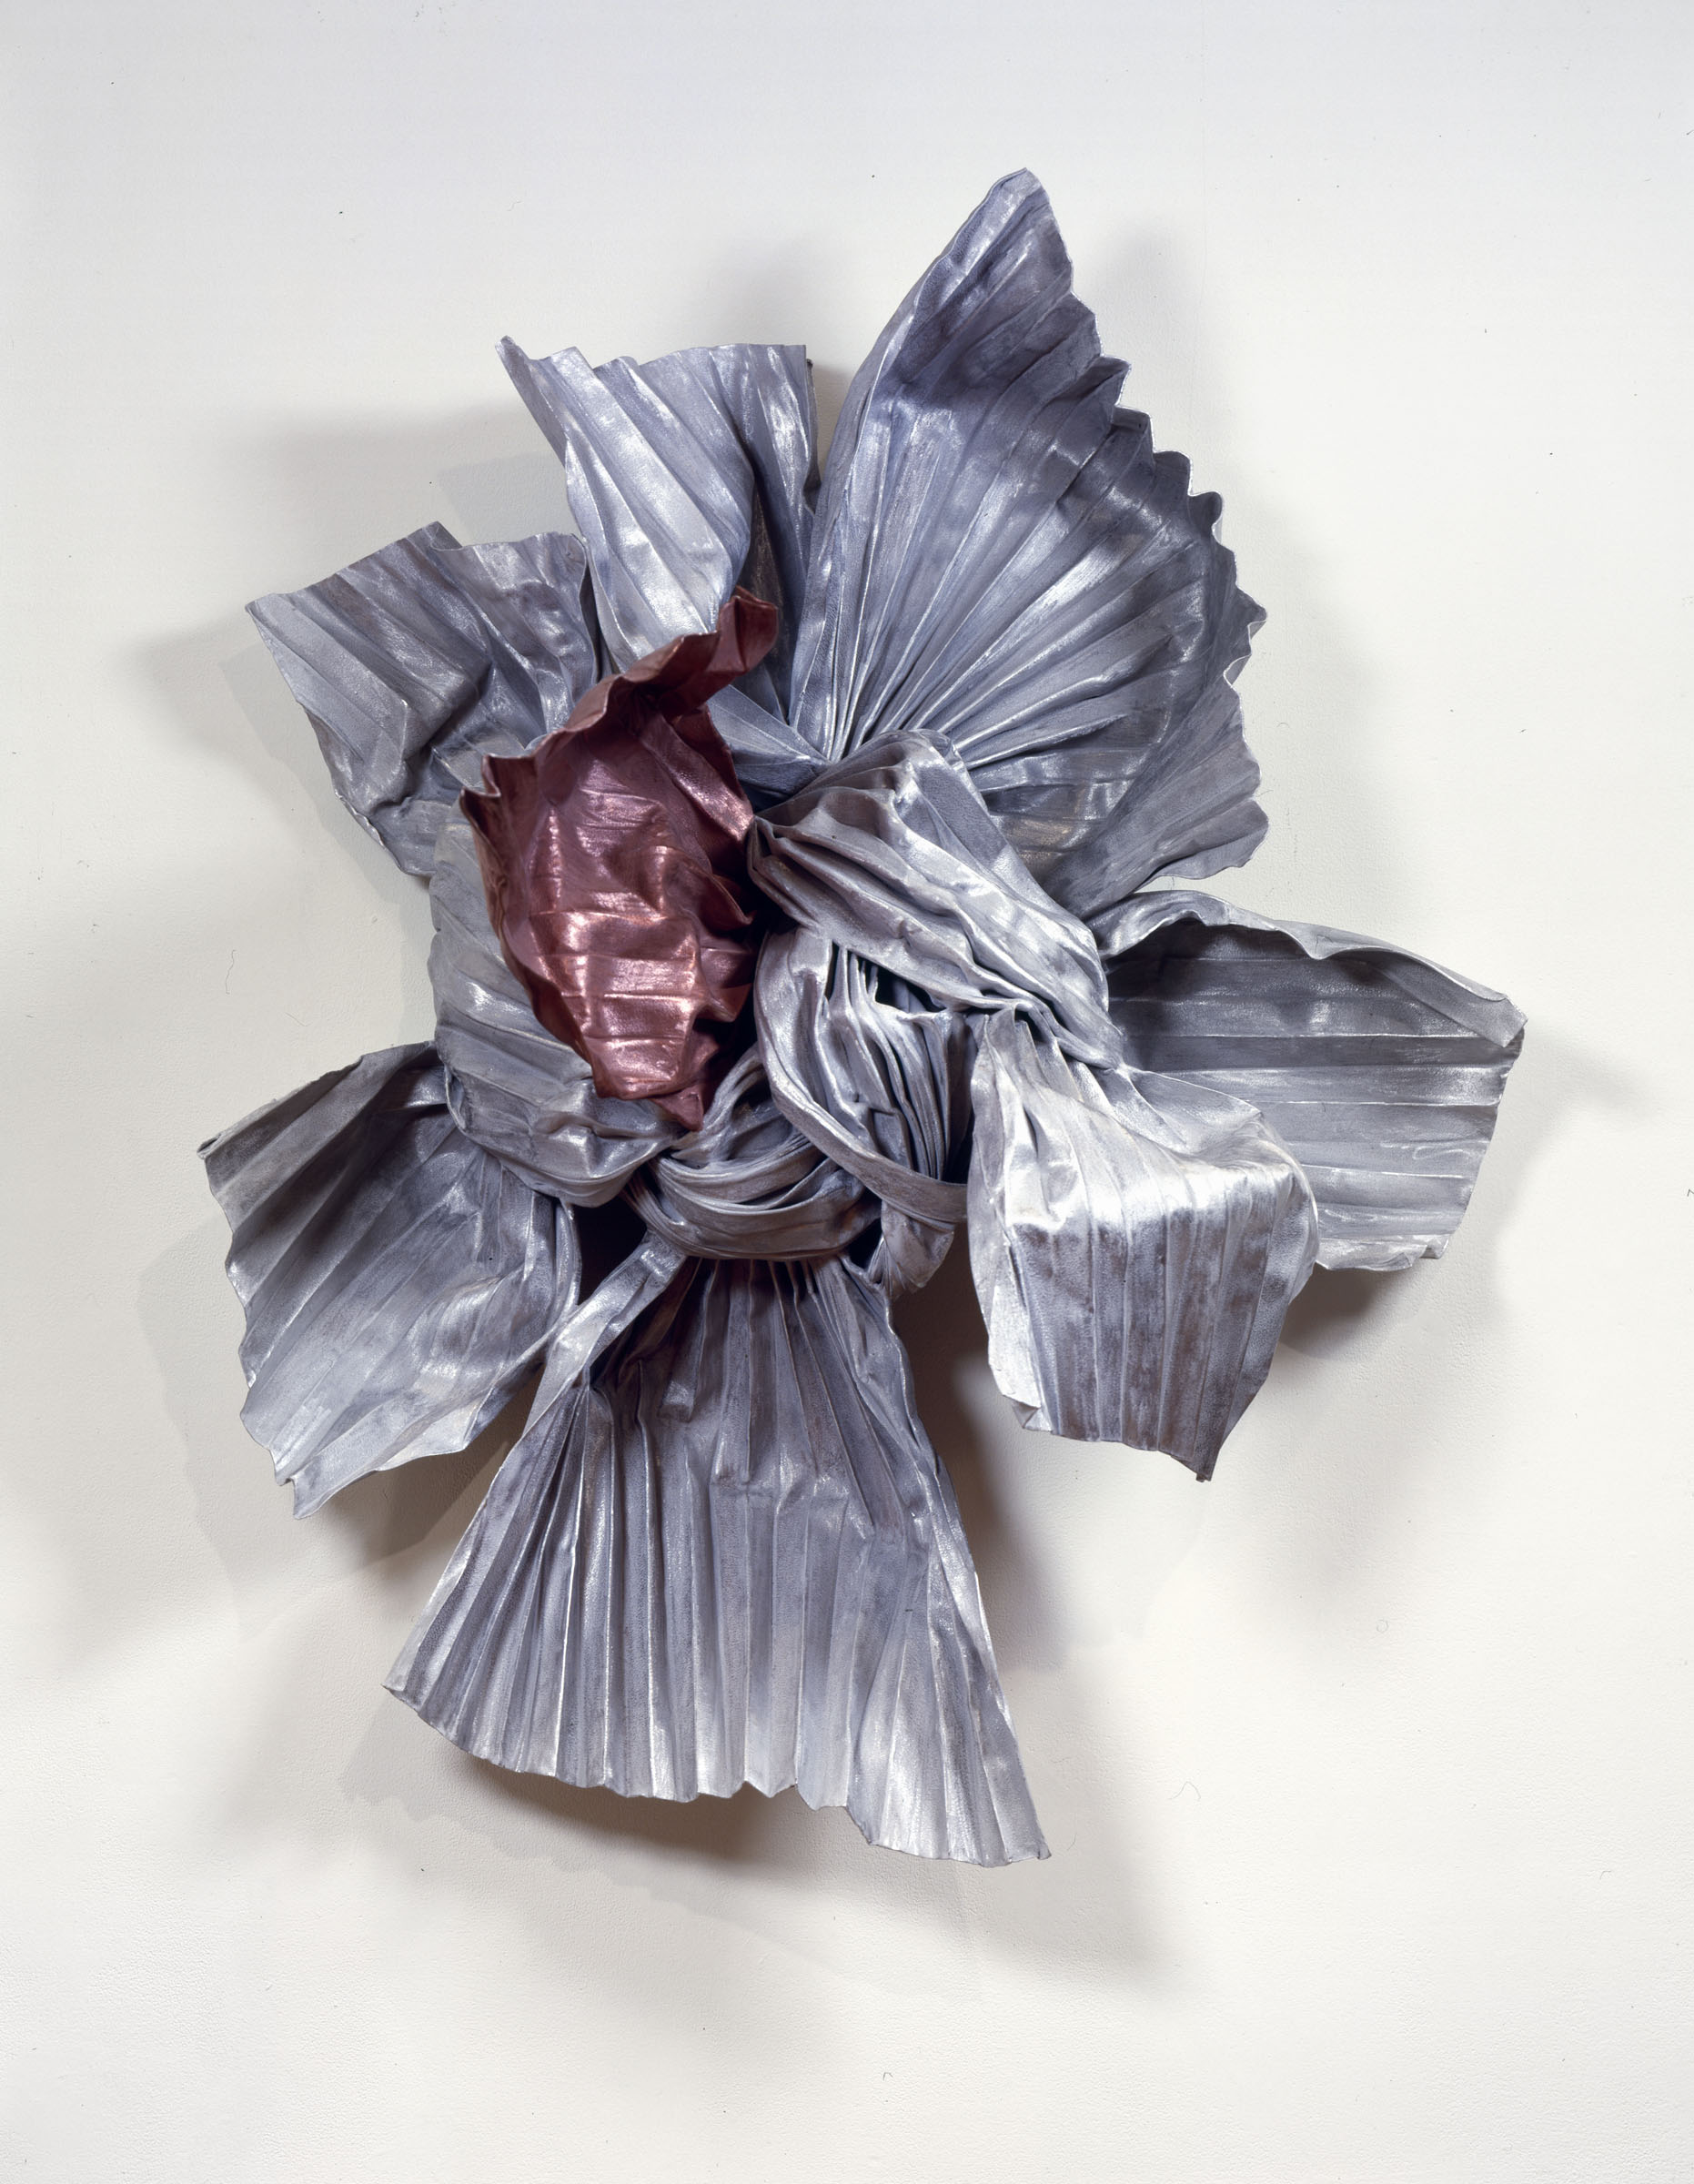 Lynda Benglis's sculpture is a shining knot mounted on the wall made out of bronze, zinc, copper, aluminum, wire that has been manipulated to appear light as a bow.